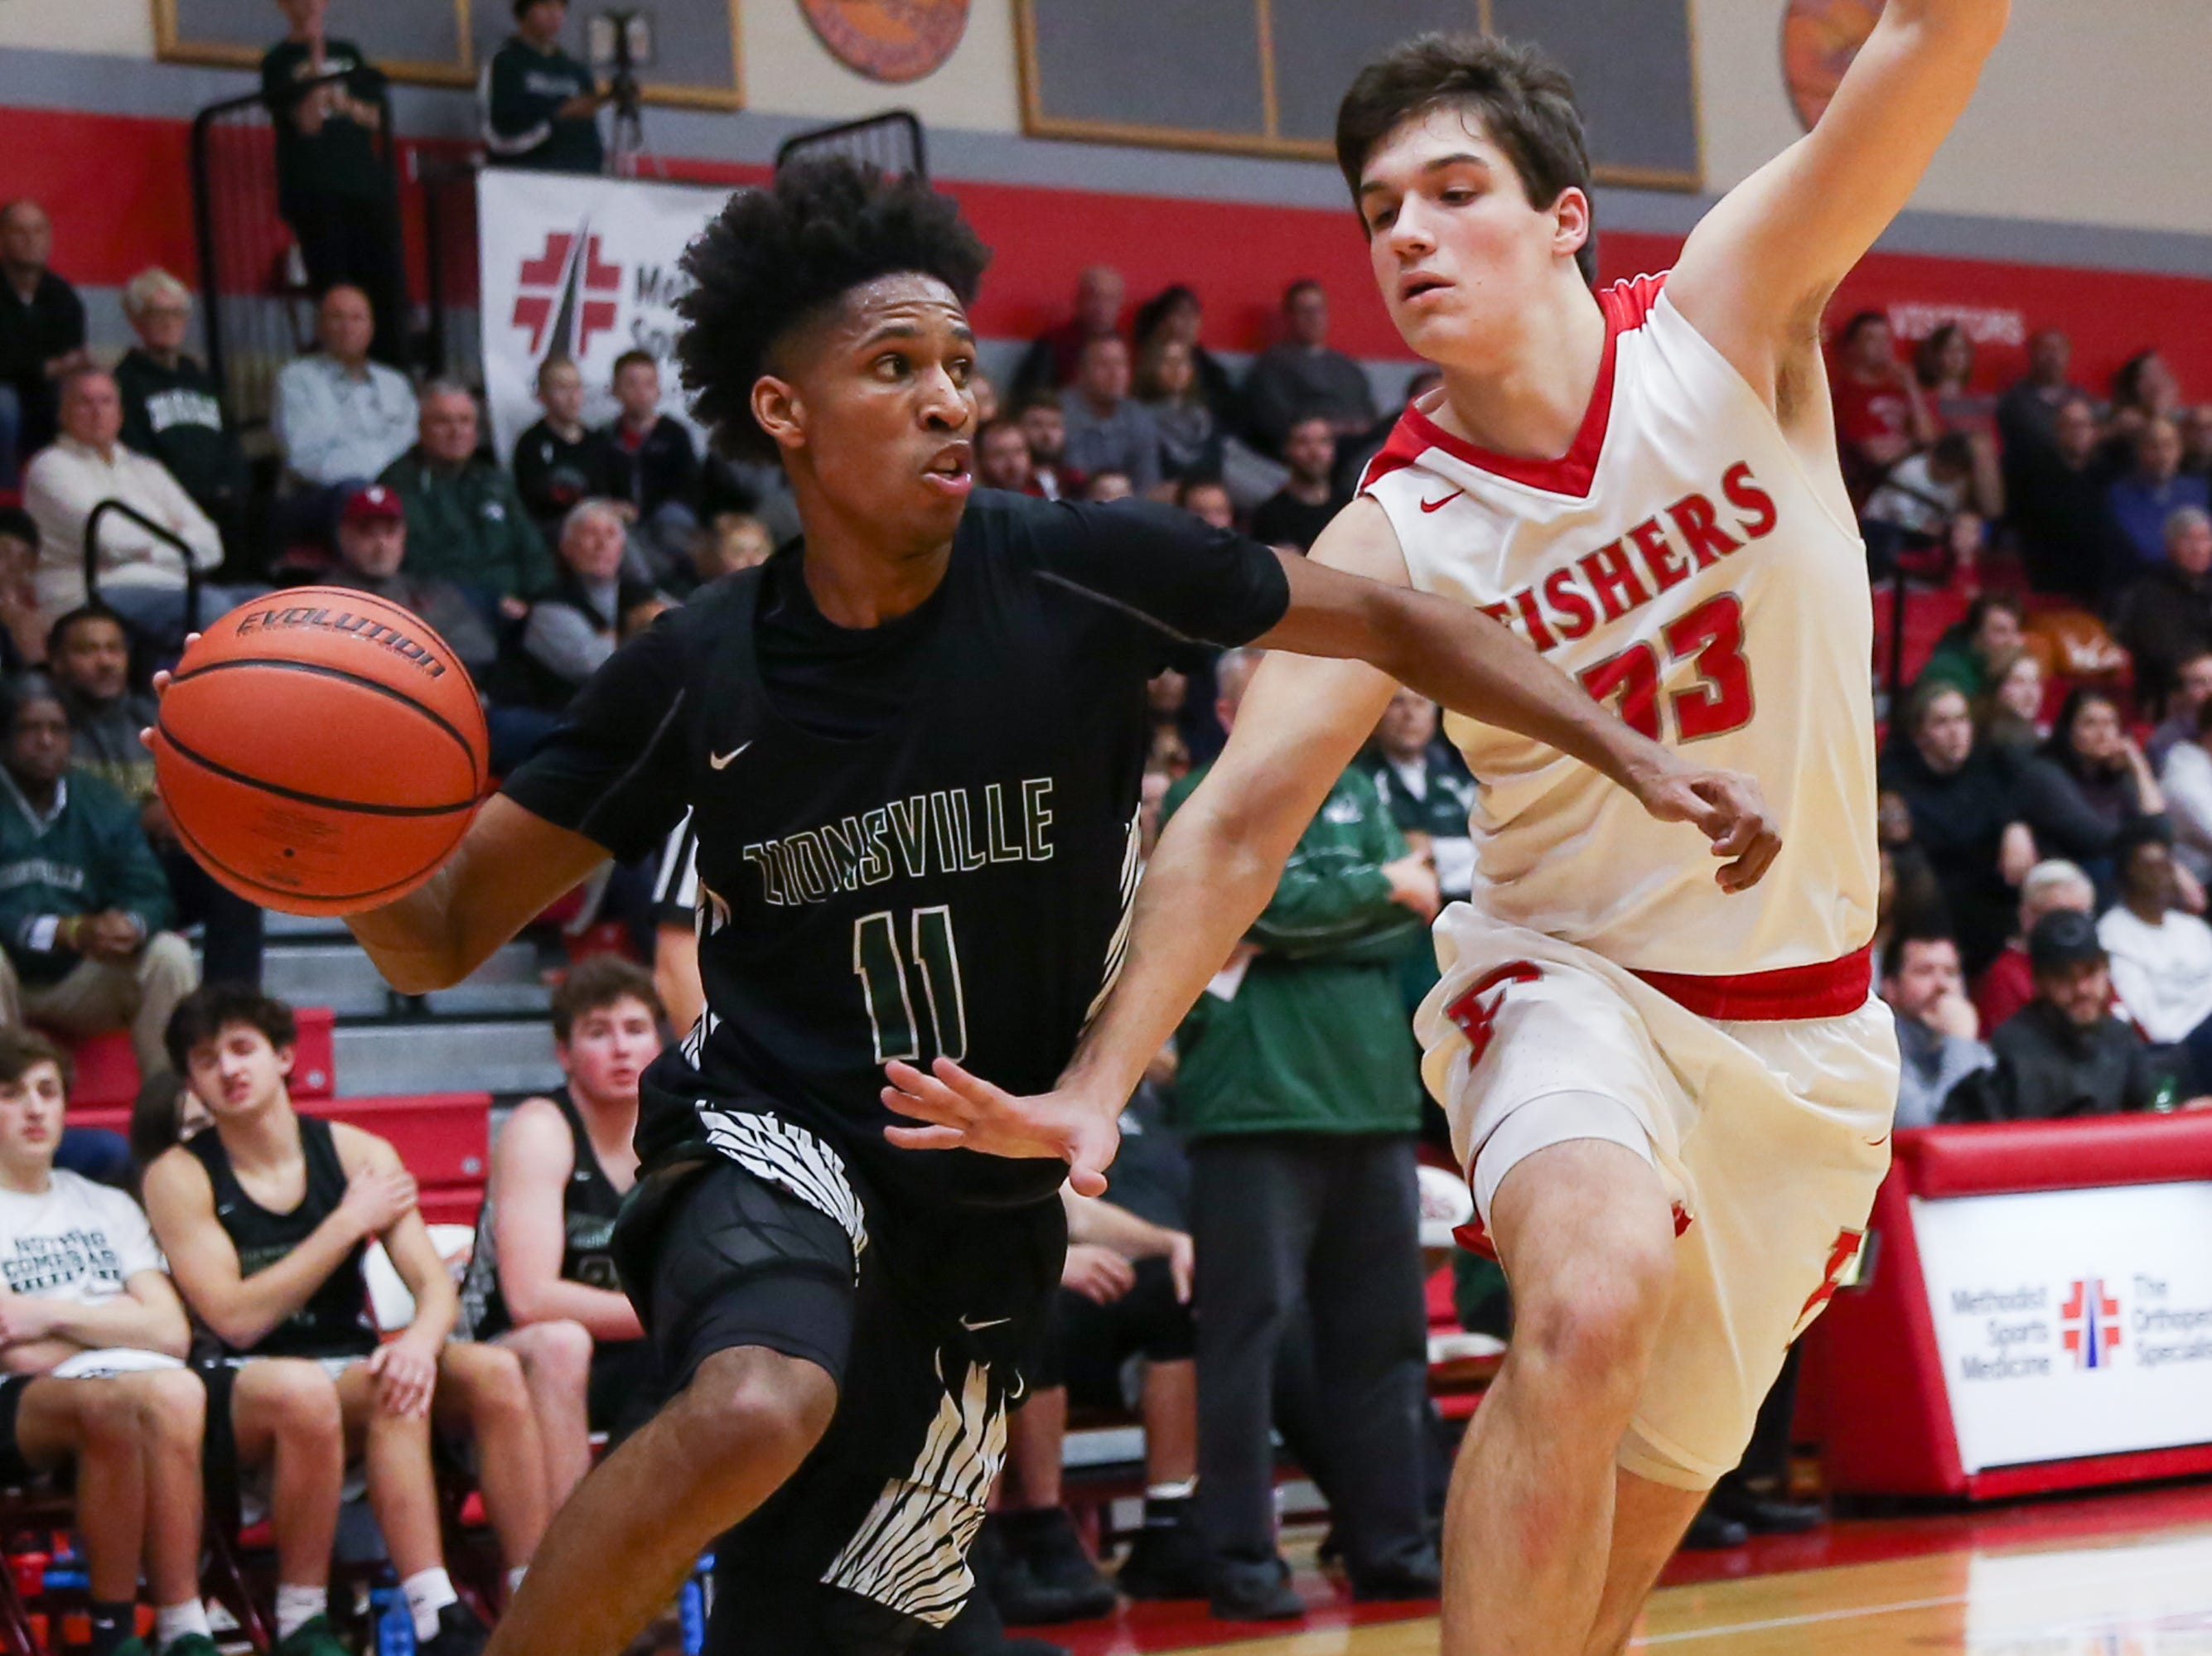 Zionsville Isaiah Thompson (11) makes a move around Fisher's Jeffrey Simmons (33) heading for the basket during the second half of Zionsville vs. Fishers high school boys varsity basketball game held at Fishers High School, February 15, 2019.